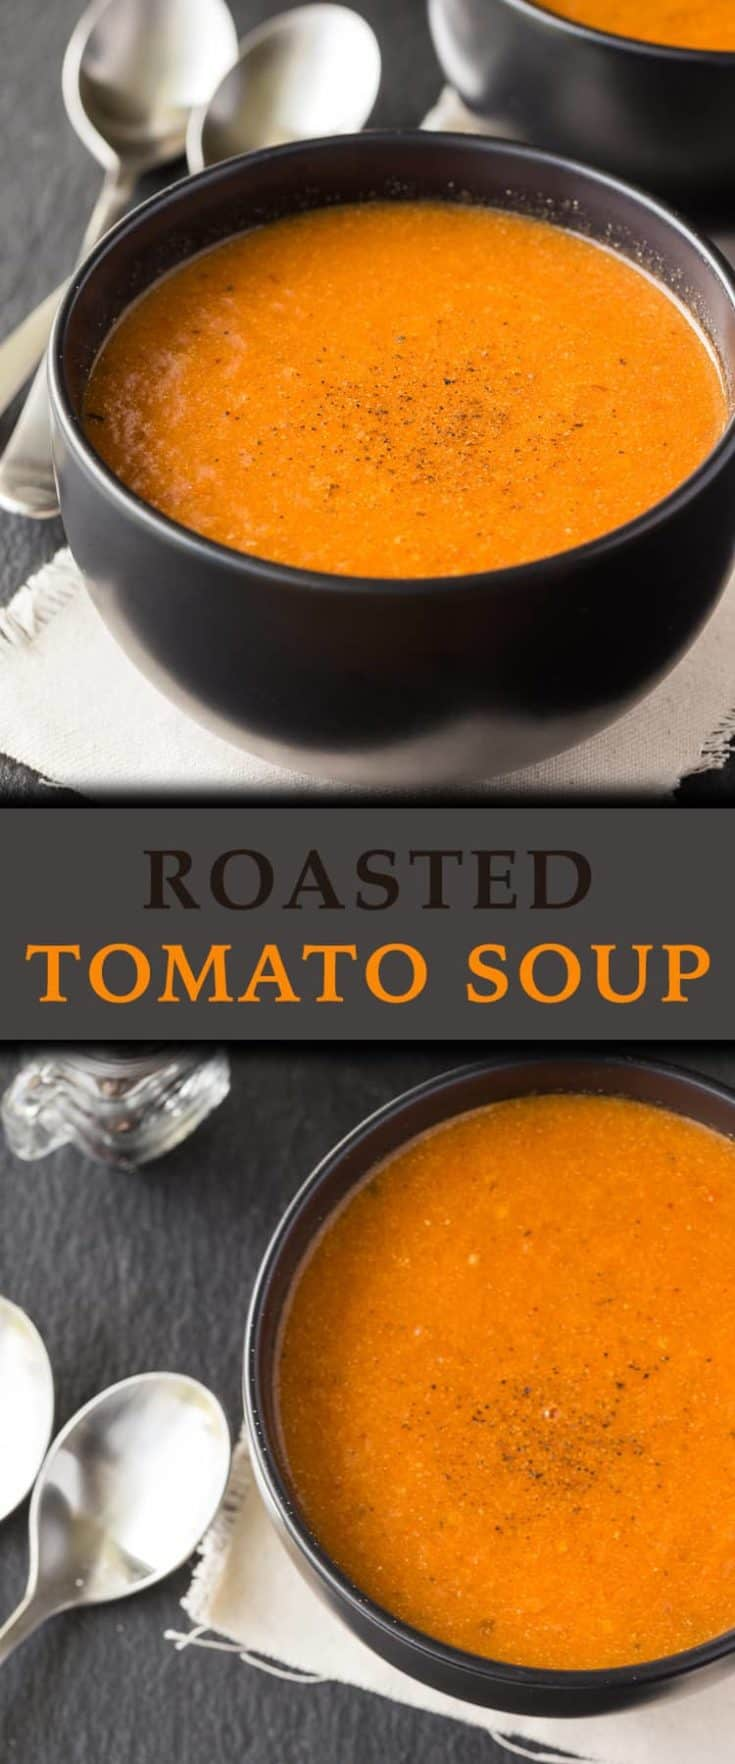 f you have time, make this Roasted Tomato Soup recipe. It's delicious, creamy and you can really taste the REAL tomatoes! #tomatosoup #homemadesoup #souprecipe